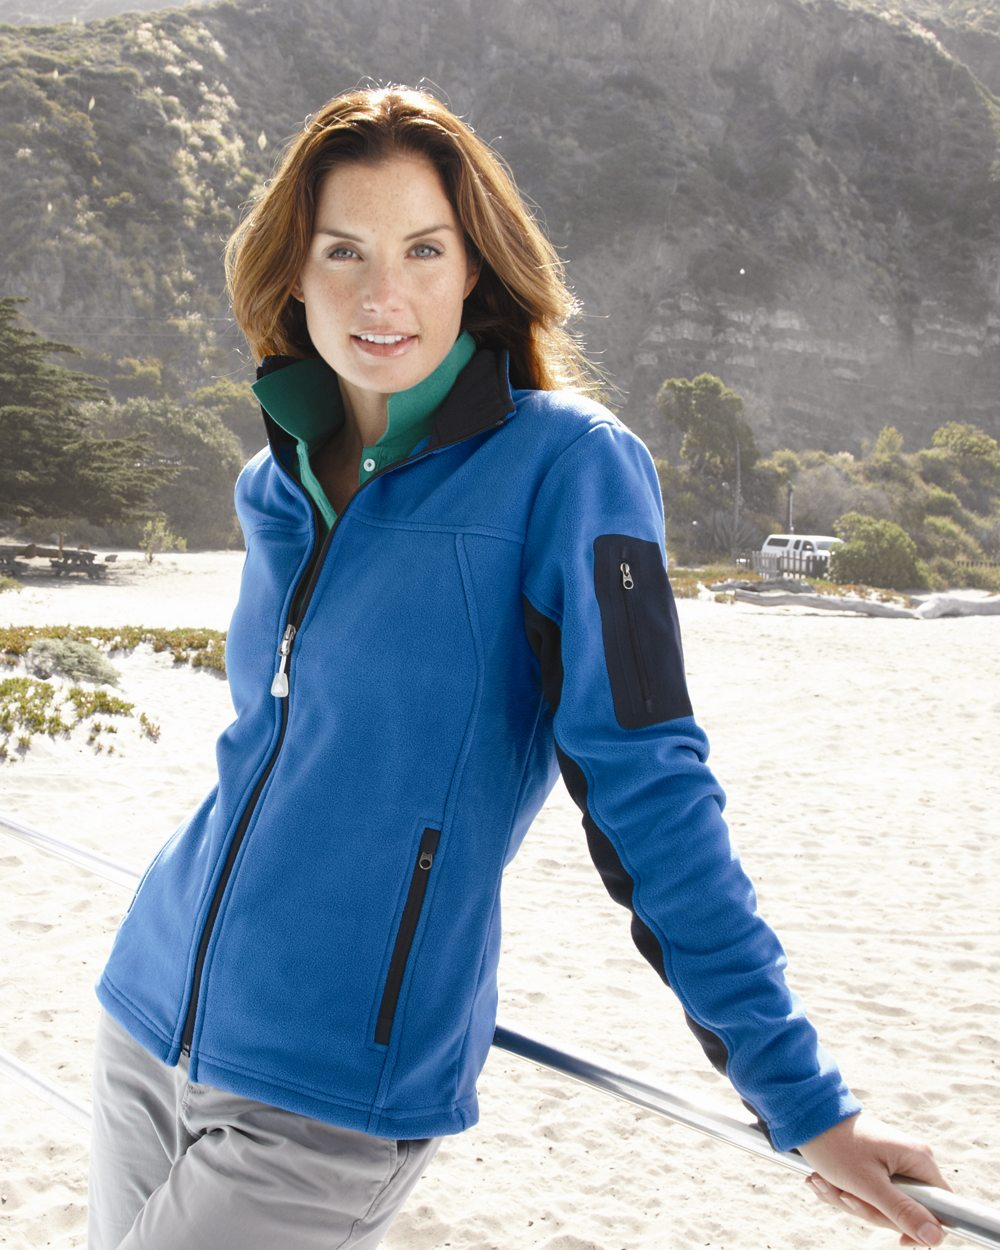 Colorado Clothing 5297 - Ladies' Colorblocked Full-Zip ...